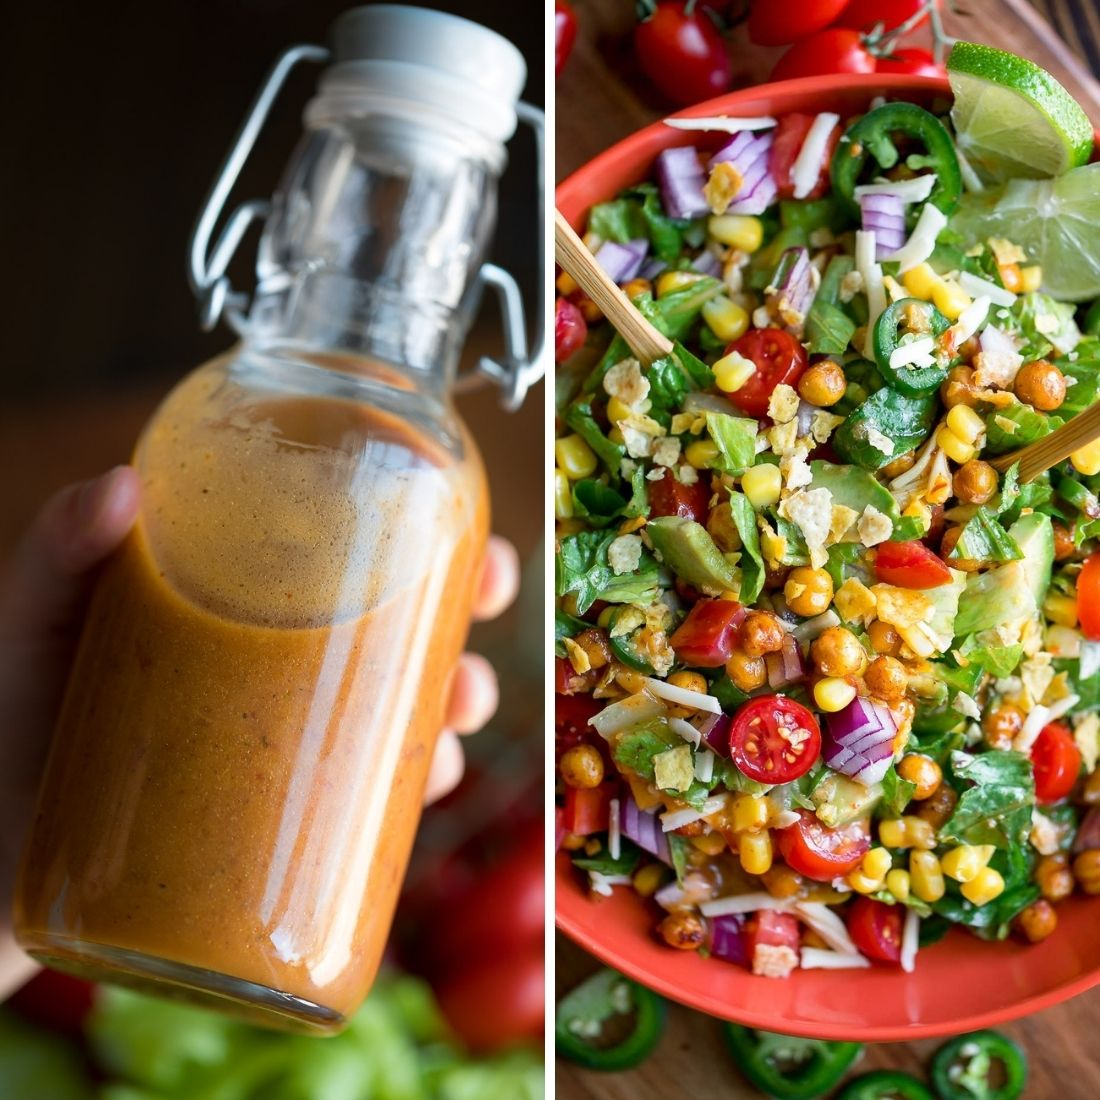 Honey Chipotle Dressing and Taco Salad